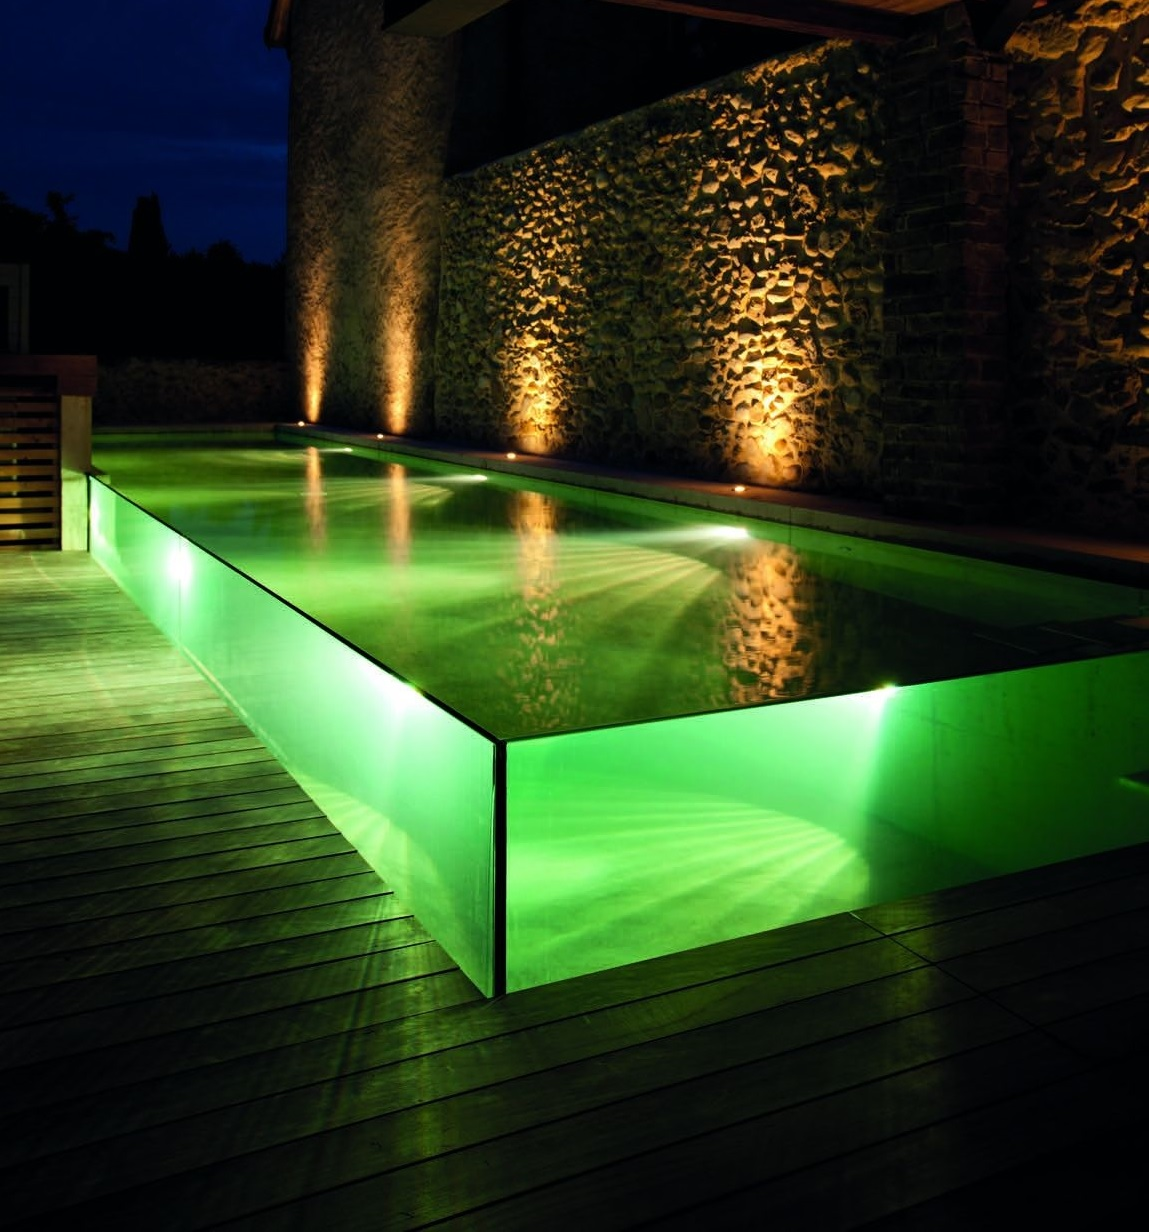 Piscine clair e bain de minuit ext rieurs design for Design piscine le mans